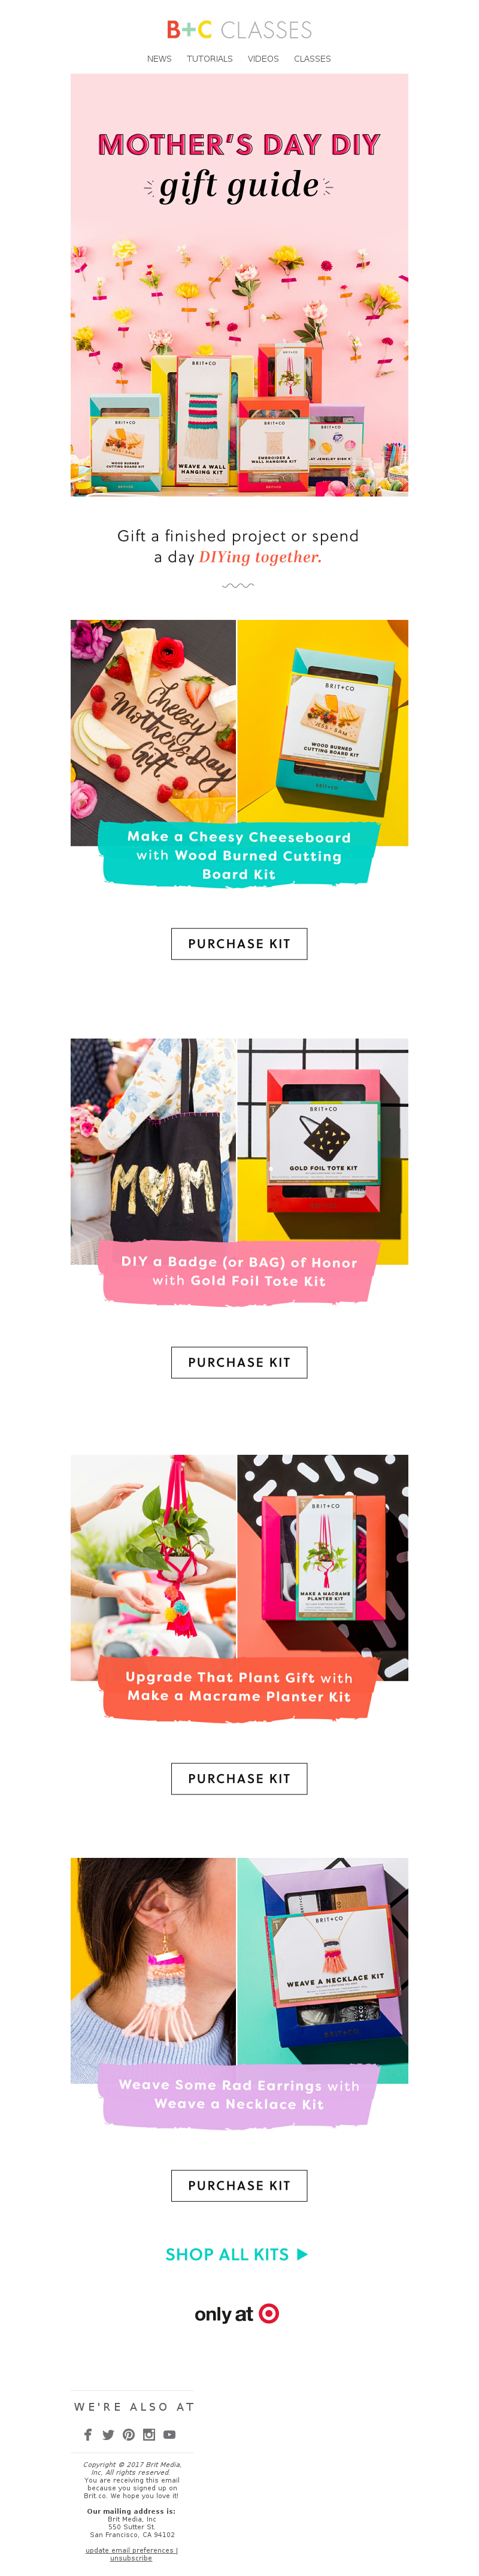 Mother's day email example from Brit + Co